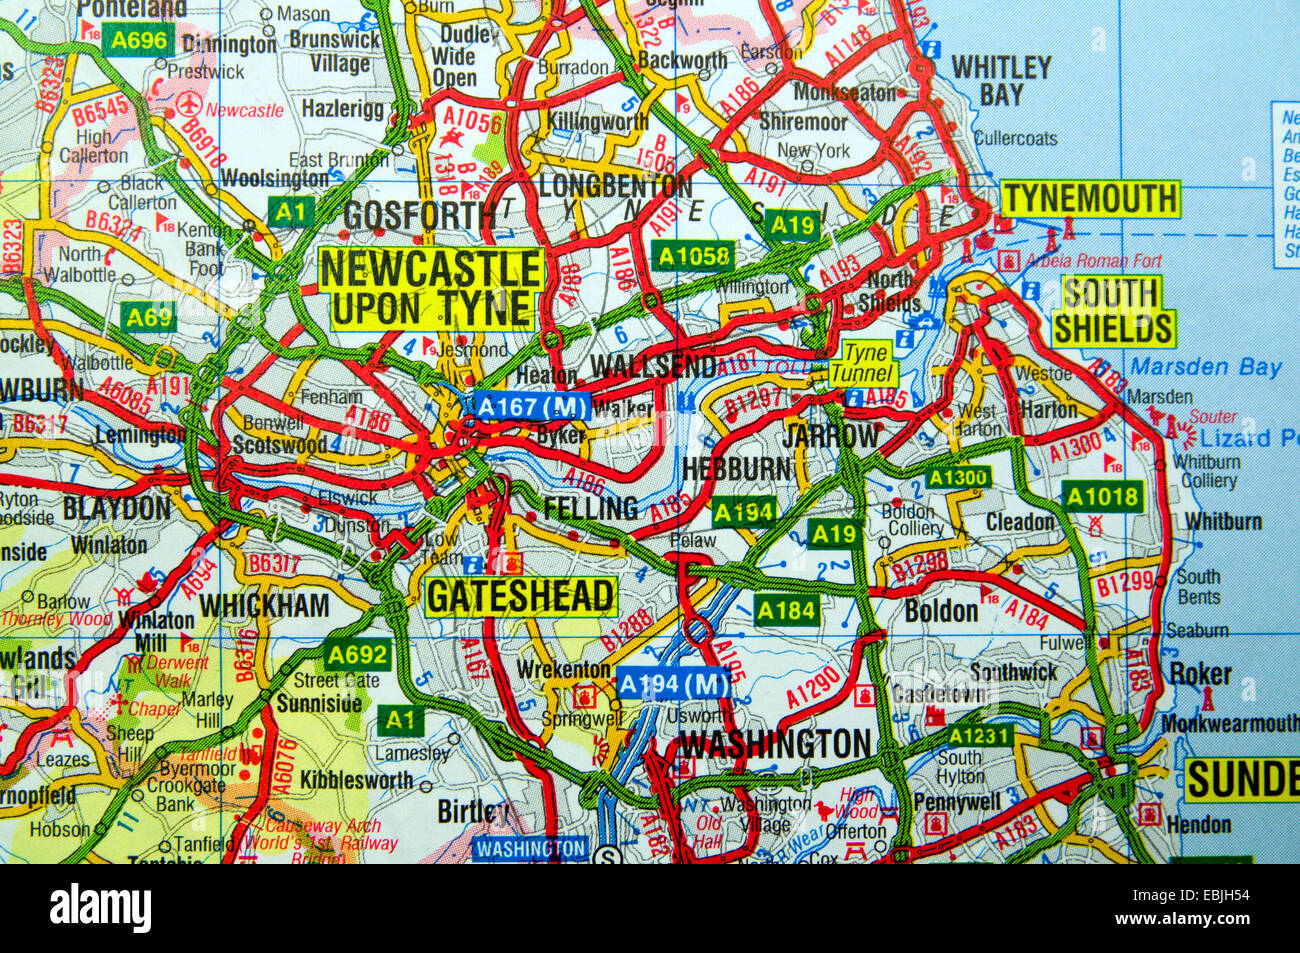 Map East Of England.Road Map Of Tyneside North East England Stock Photo 76011296 Alamy